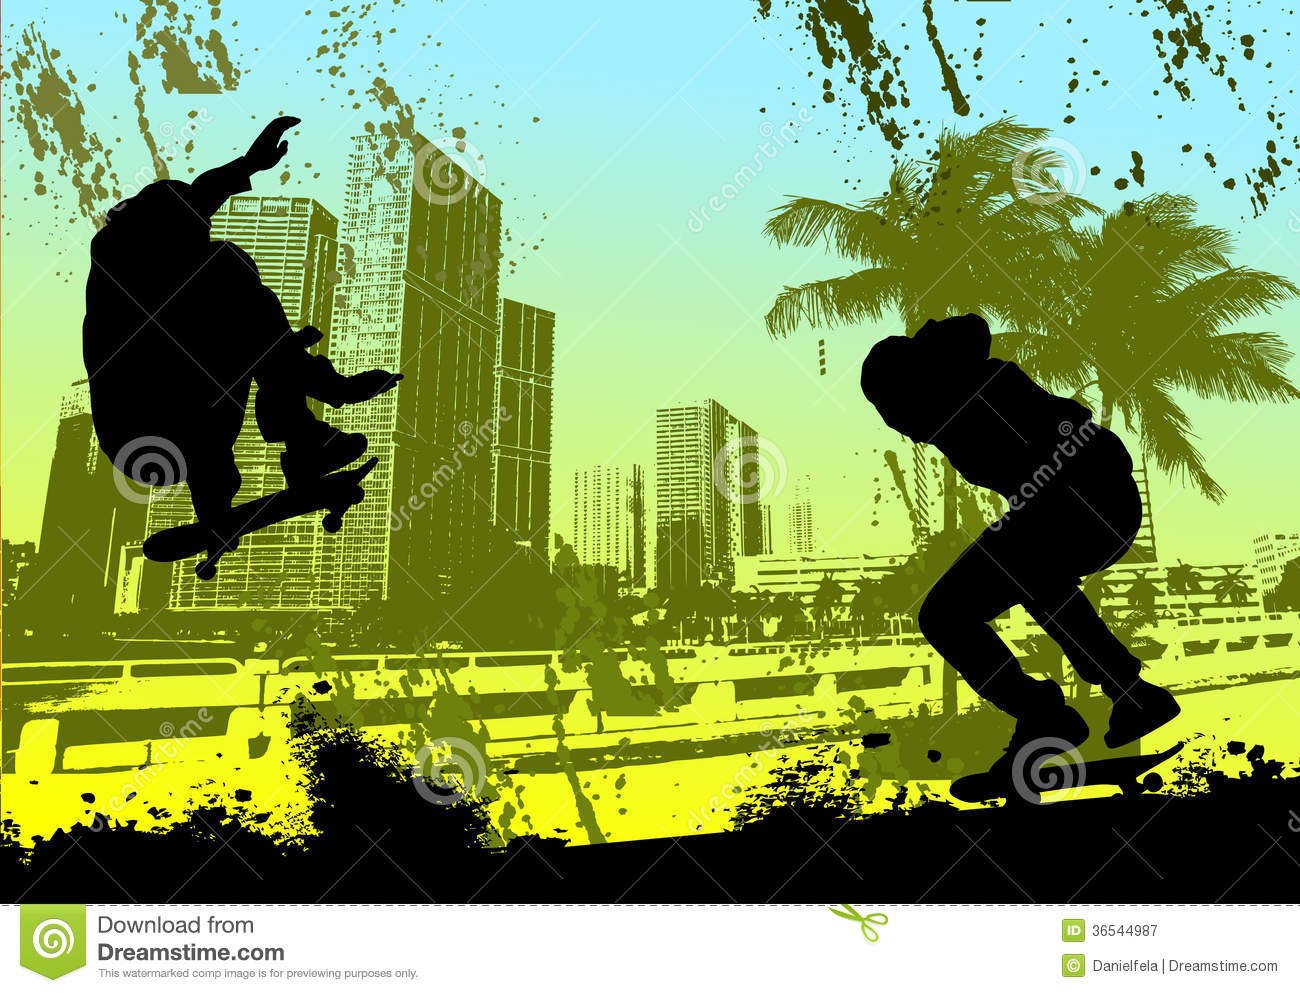 Skateboard clip art images skateboard stock photos amp clipart - Free Shipping Sports Silhouette Skateboarder Skateboarding Skater Urban City Royalty Free Stock Photography Image